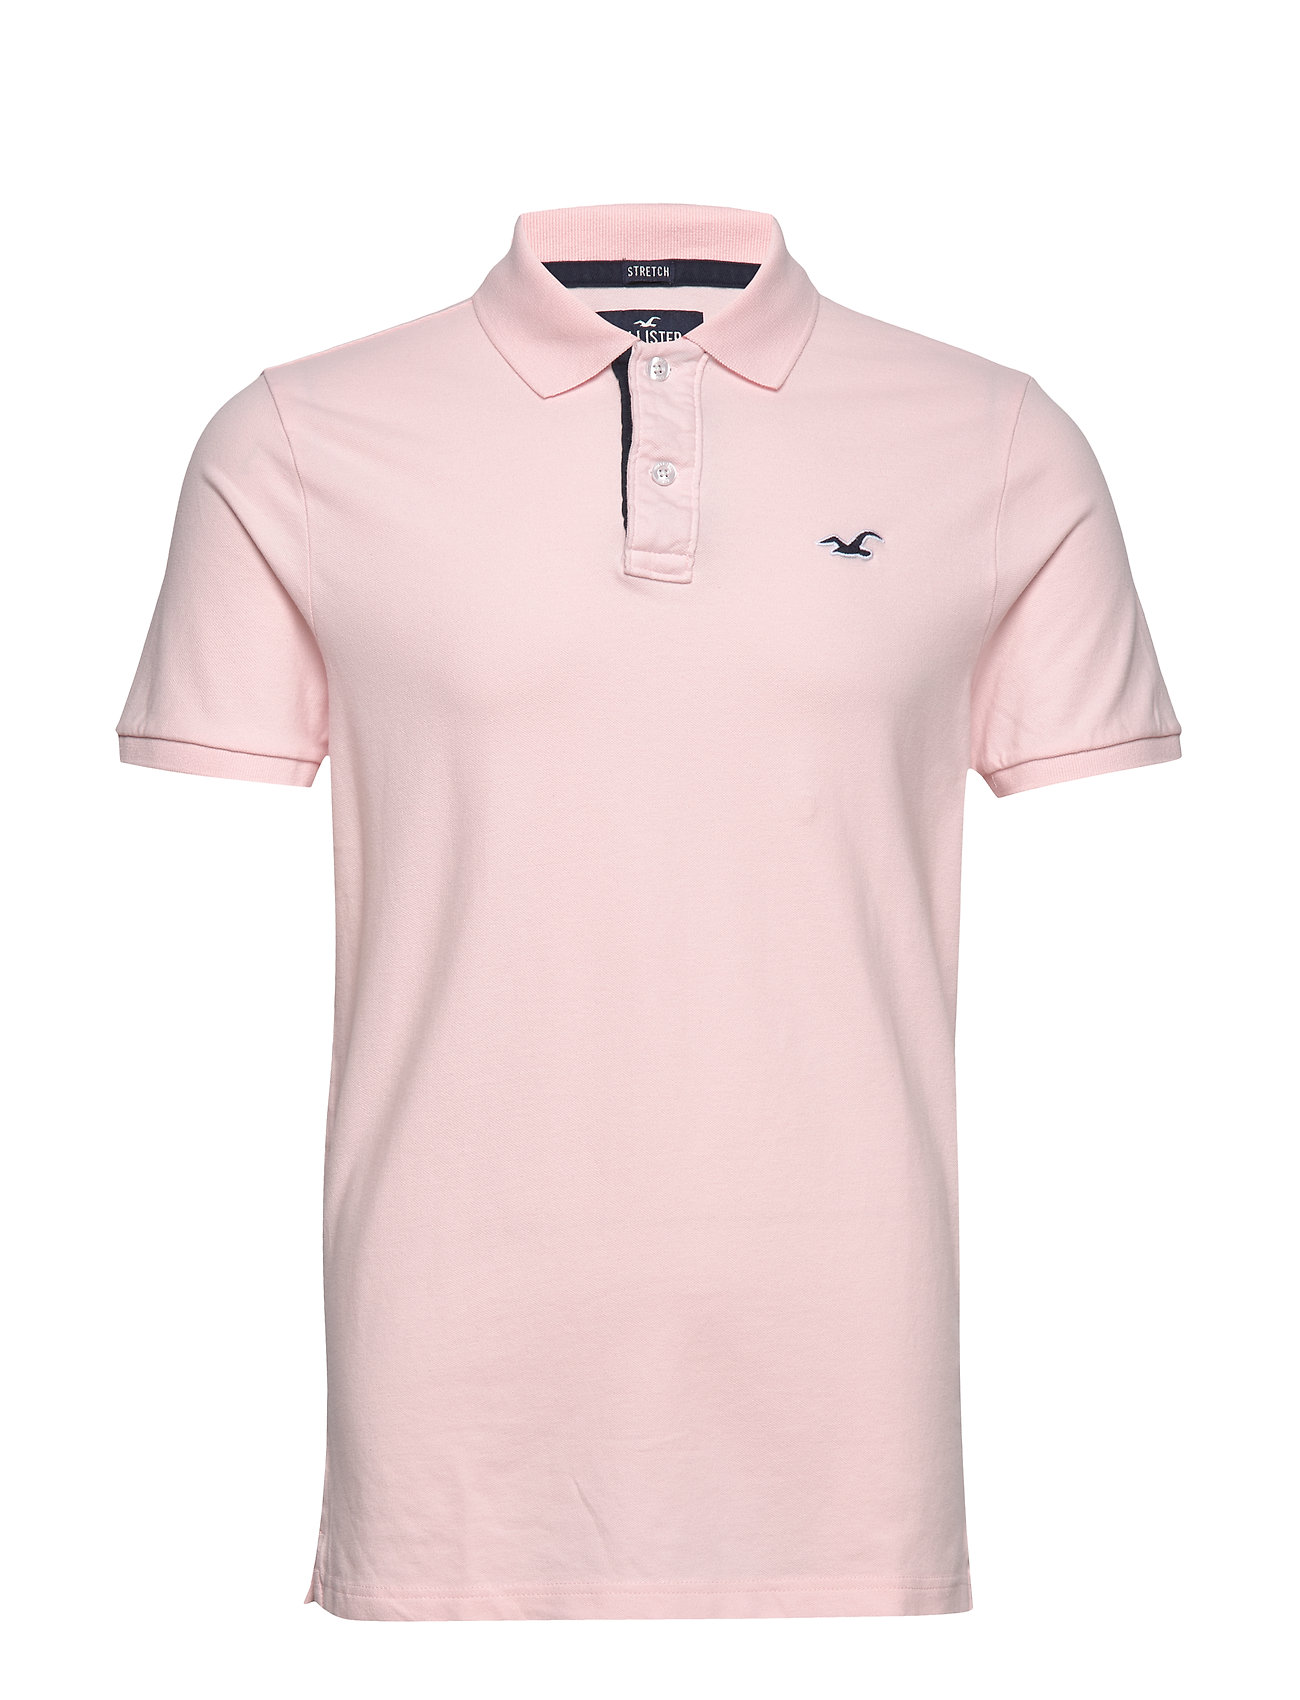 Hollister Heritage Polo Pink - LIGHT PINK DD